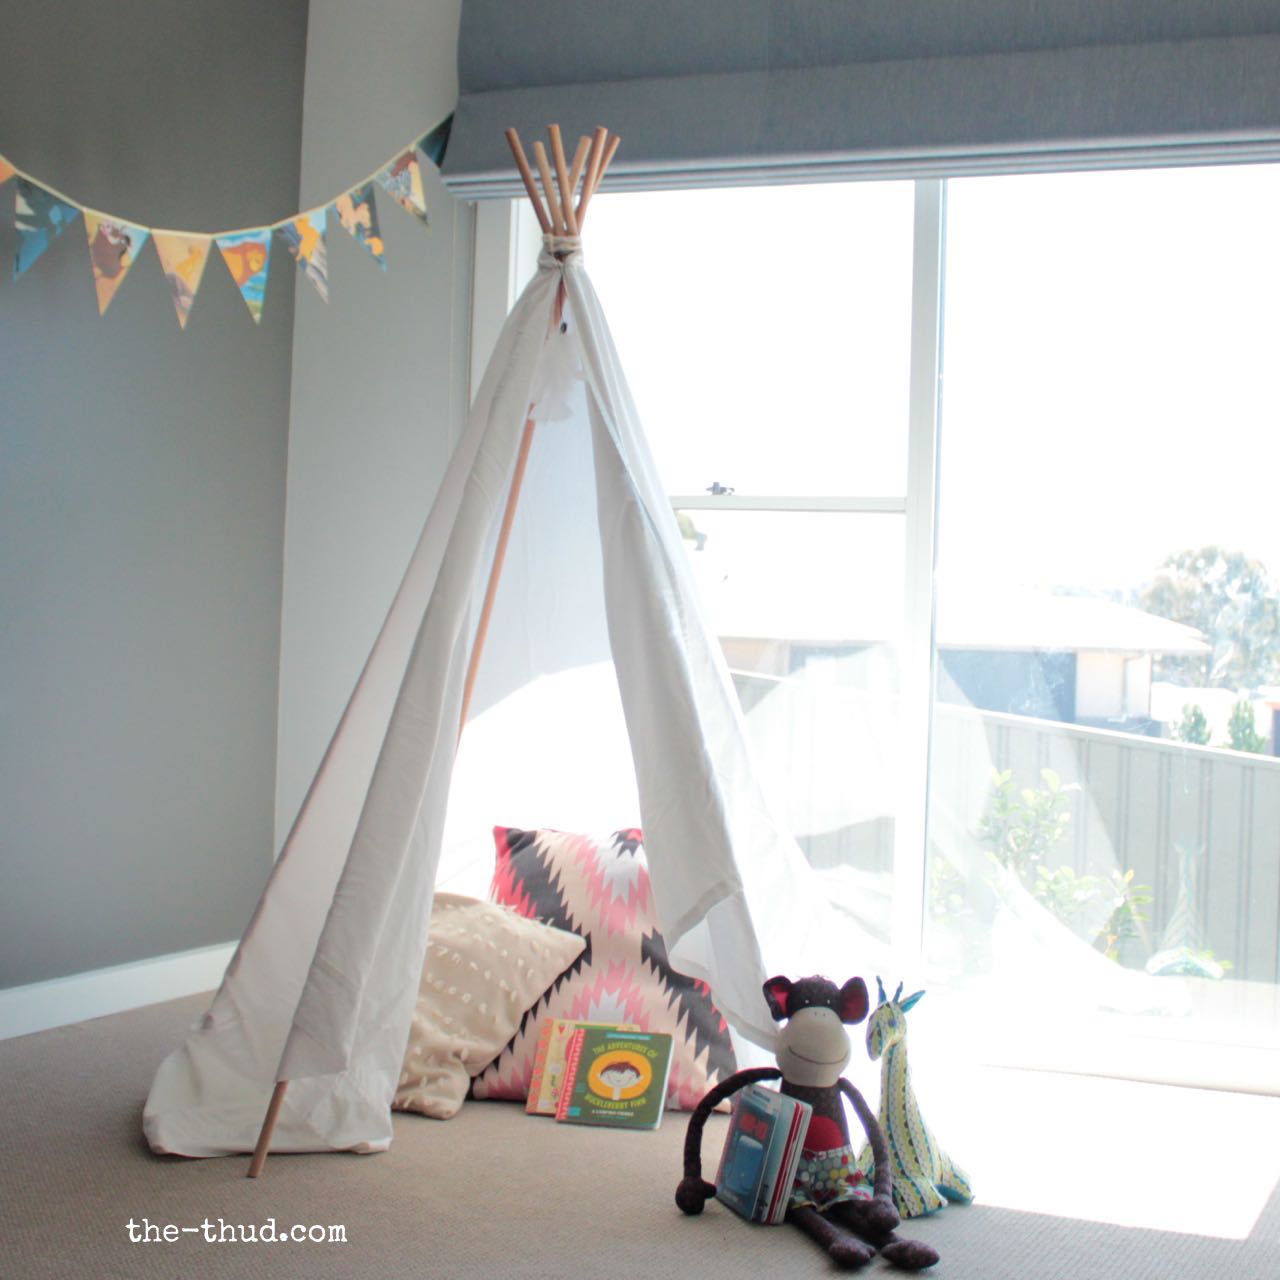 DIY kids teepee instructions - sew and no sew variations. Super easy and cheap to & DIY Kids Teepee - The Thud